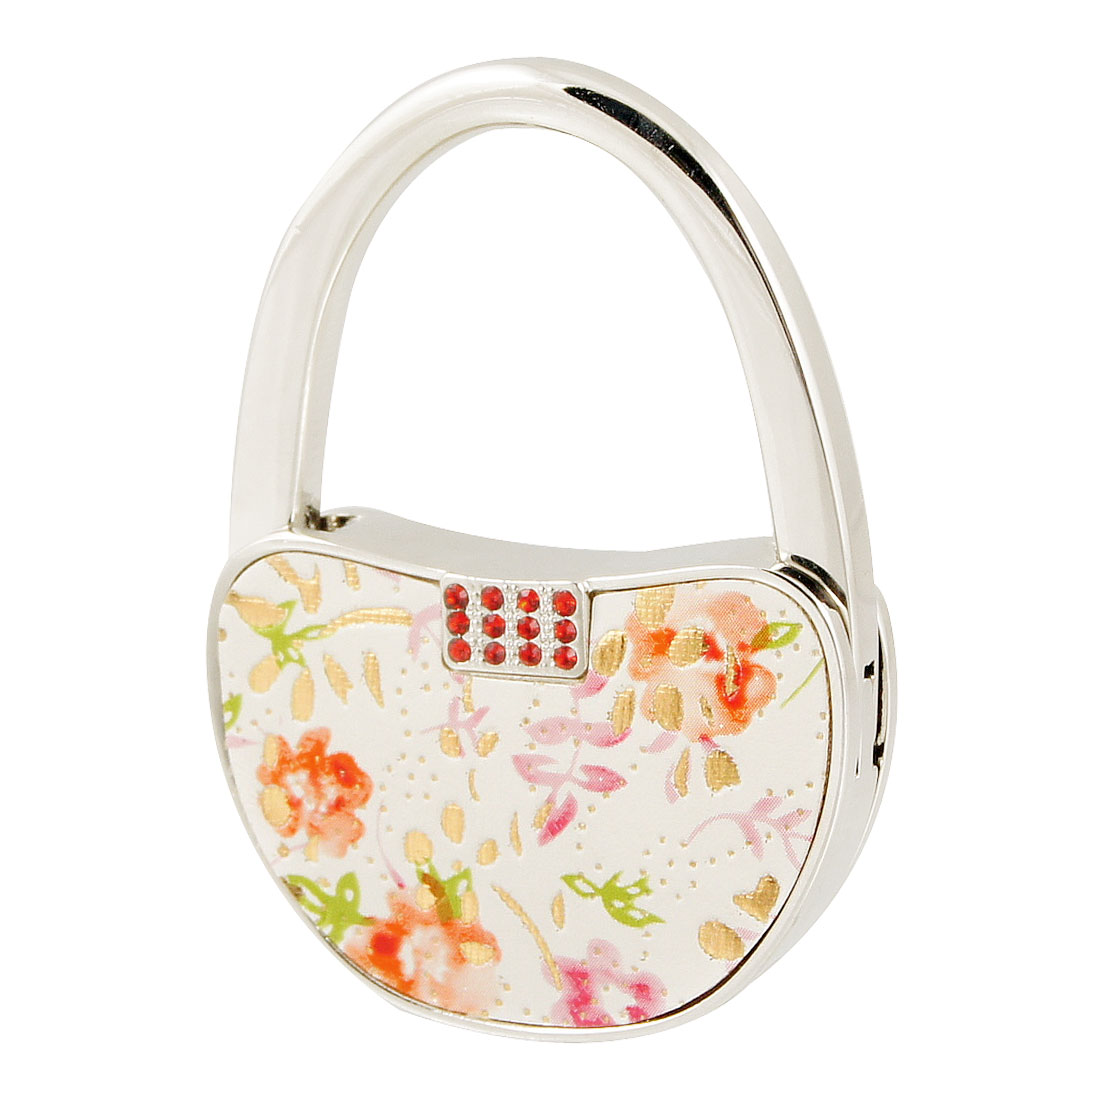 Rhinestone Floral Magnetic Closure White Padlock Shaped Foldable Handbag Hook